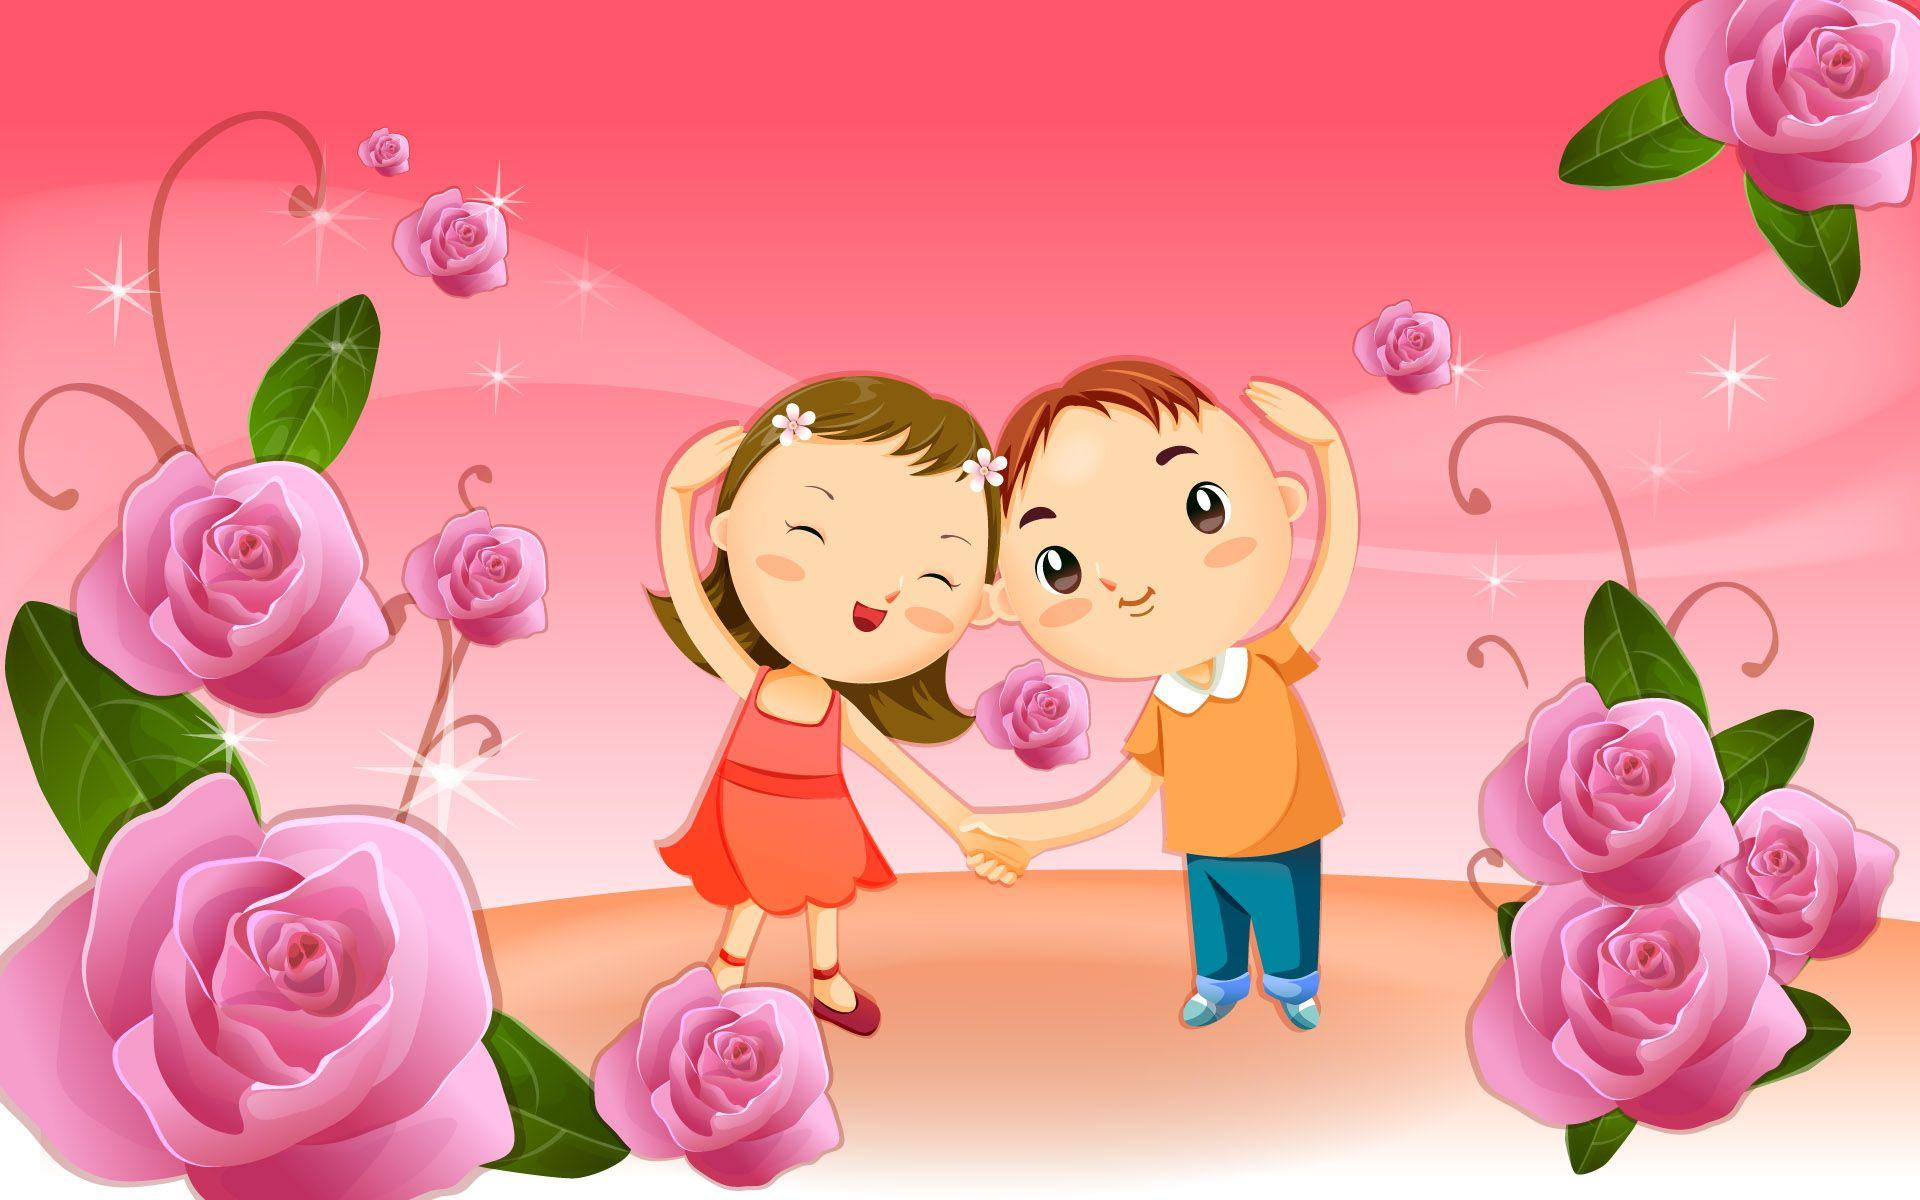 Love cartoon Wallpapers : Love cartoon Wallpapers - Wallpaper cave